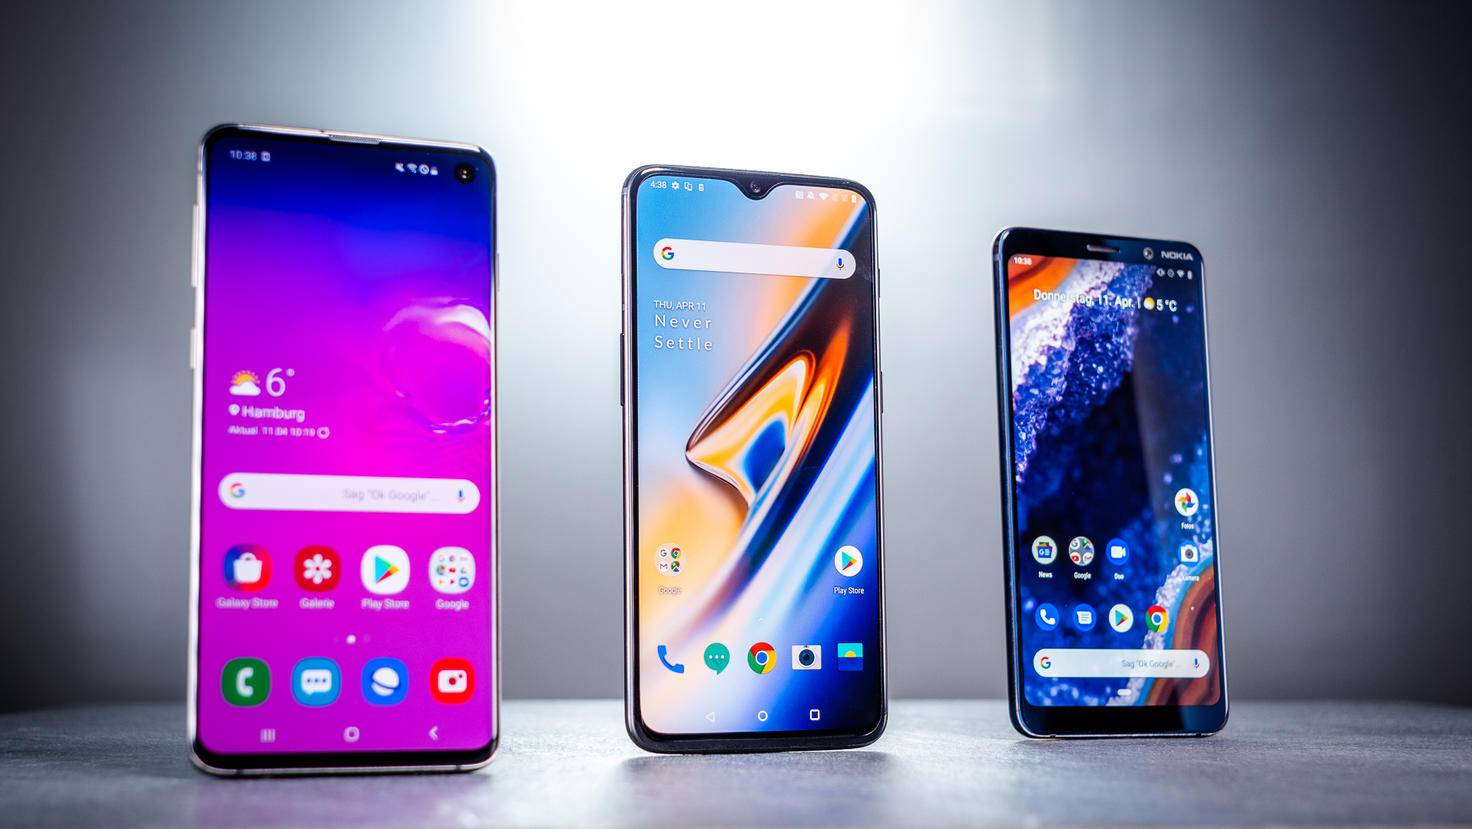 galaxy-s10-oneplus-6t-nokia-9-pureview-turn-on